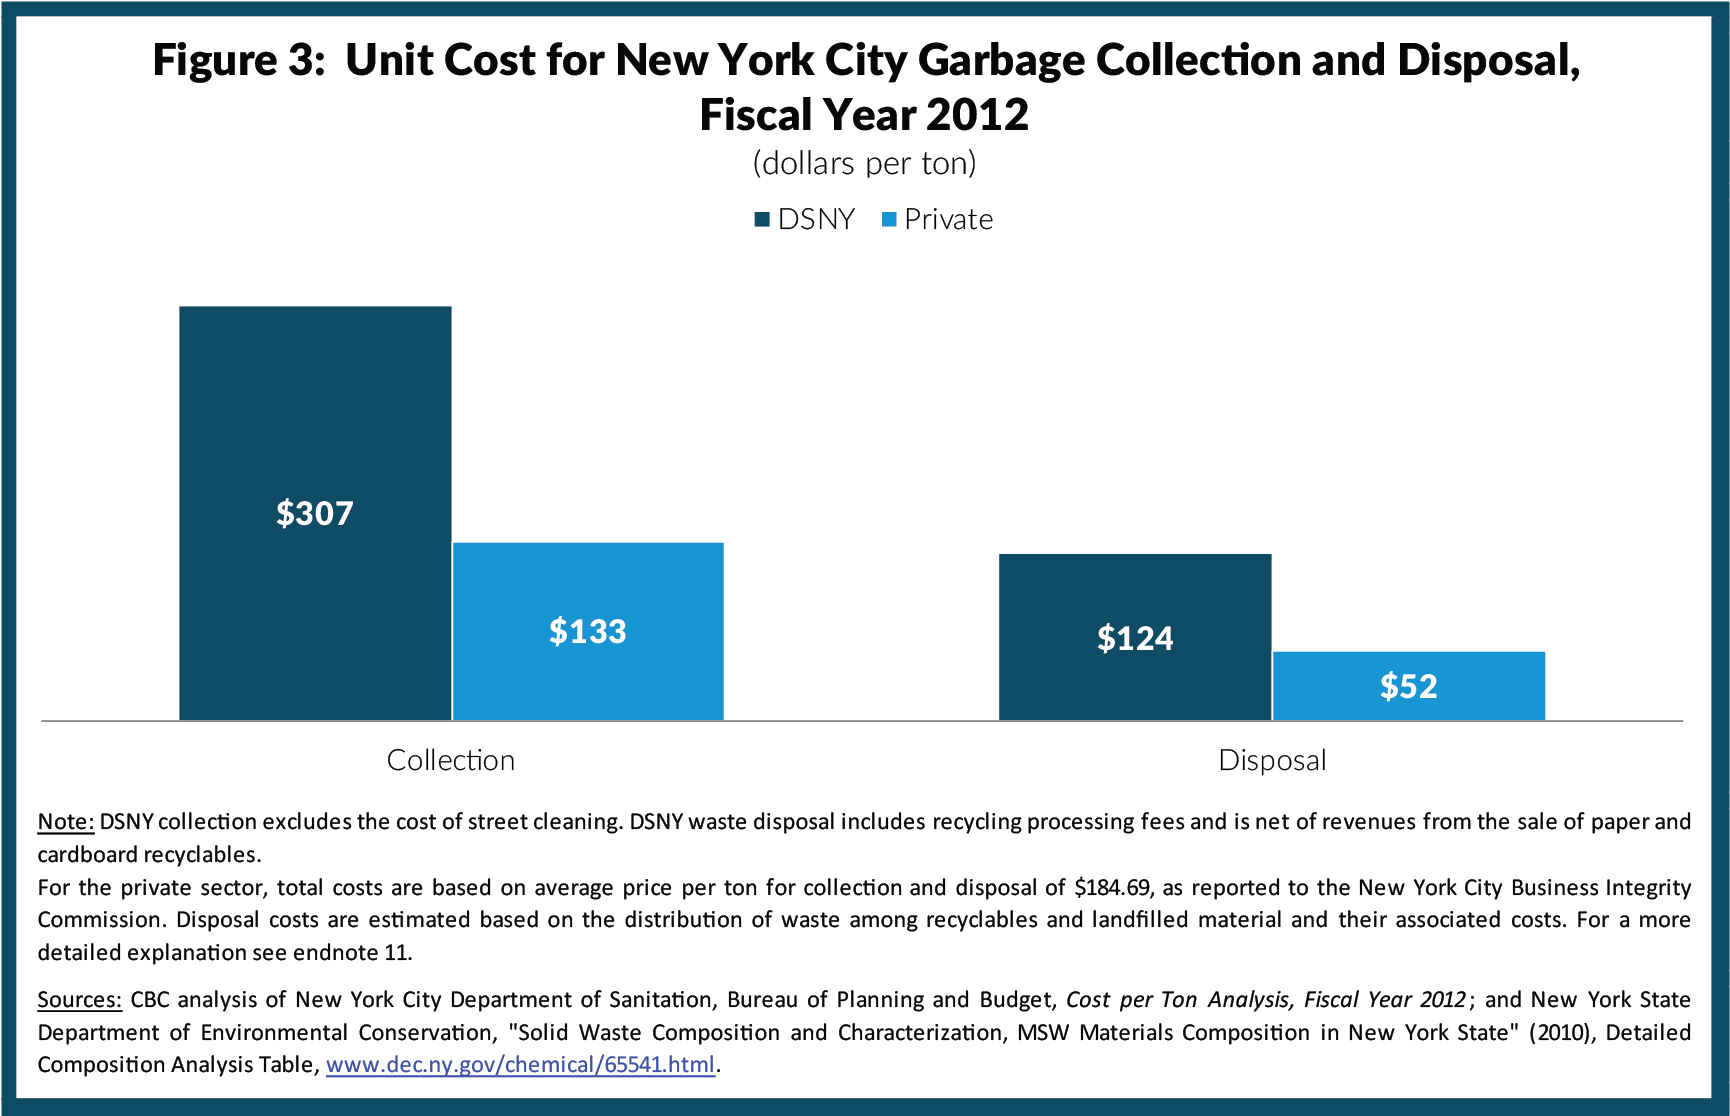 Figure 3: Unit Cost for New York City Garbage Collection and Disposal, Fiscal Year 2012